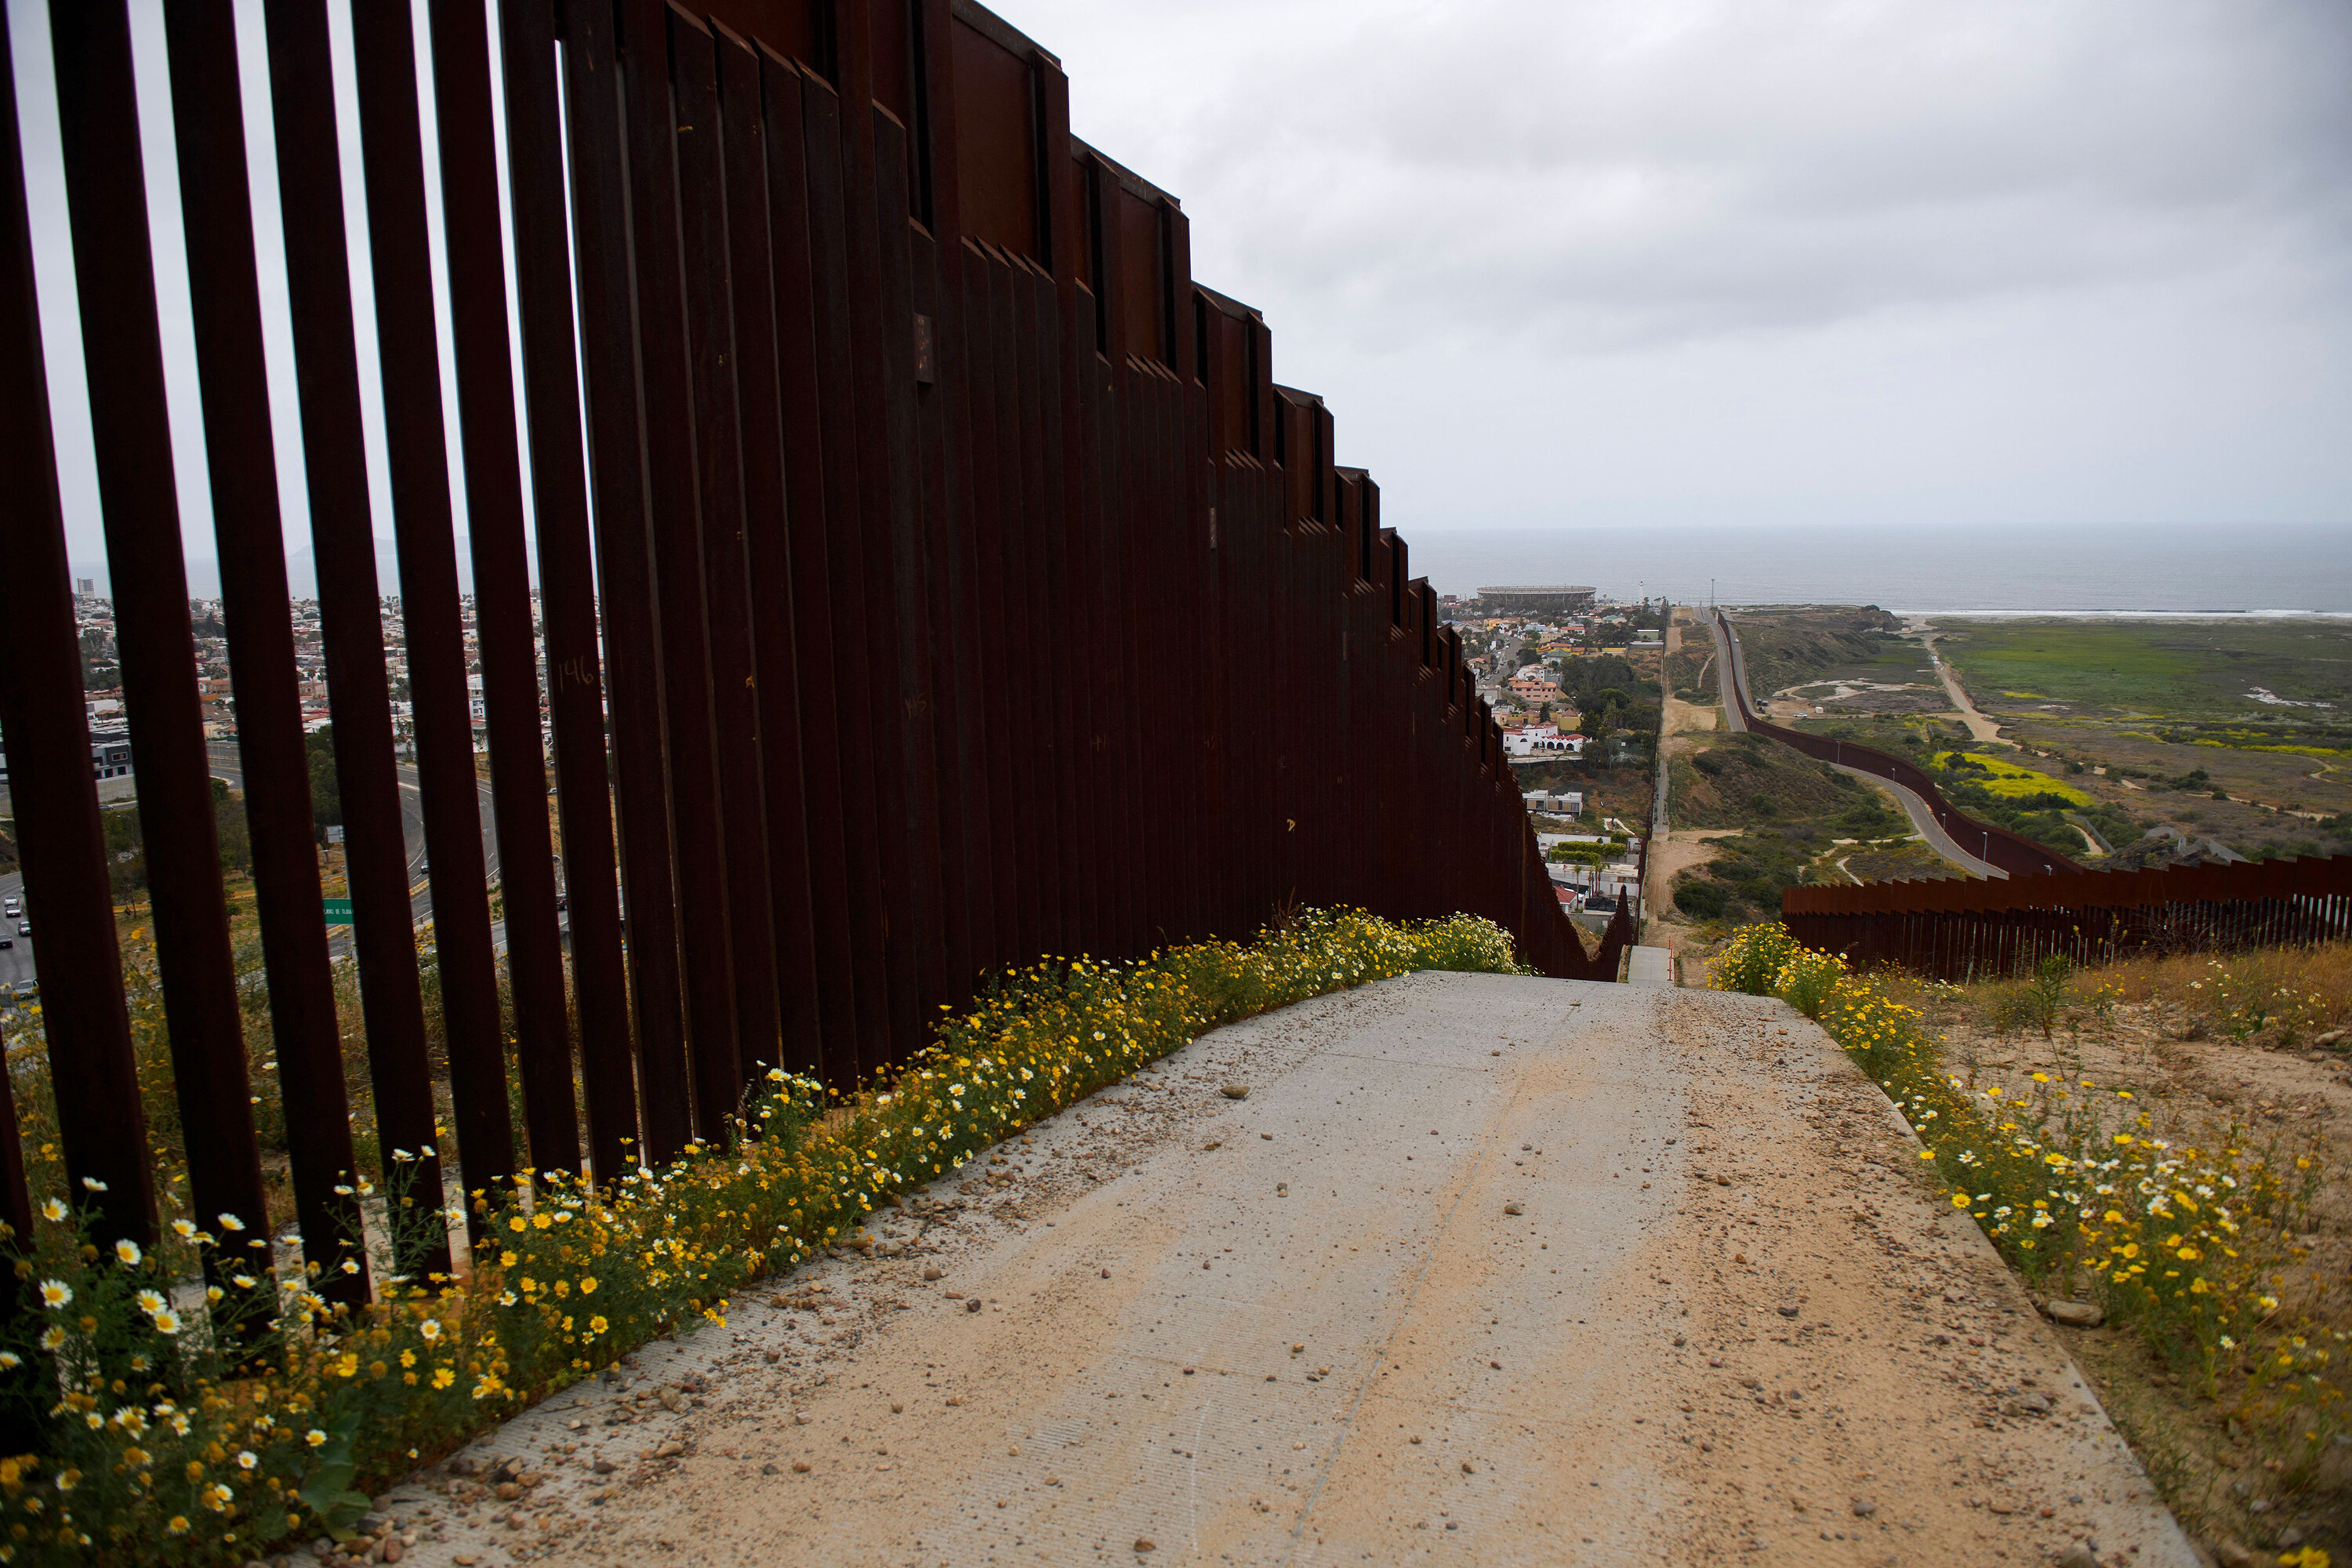 Biden administration canceling more border wall contracts